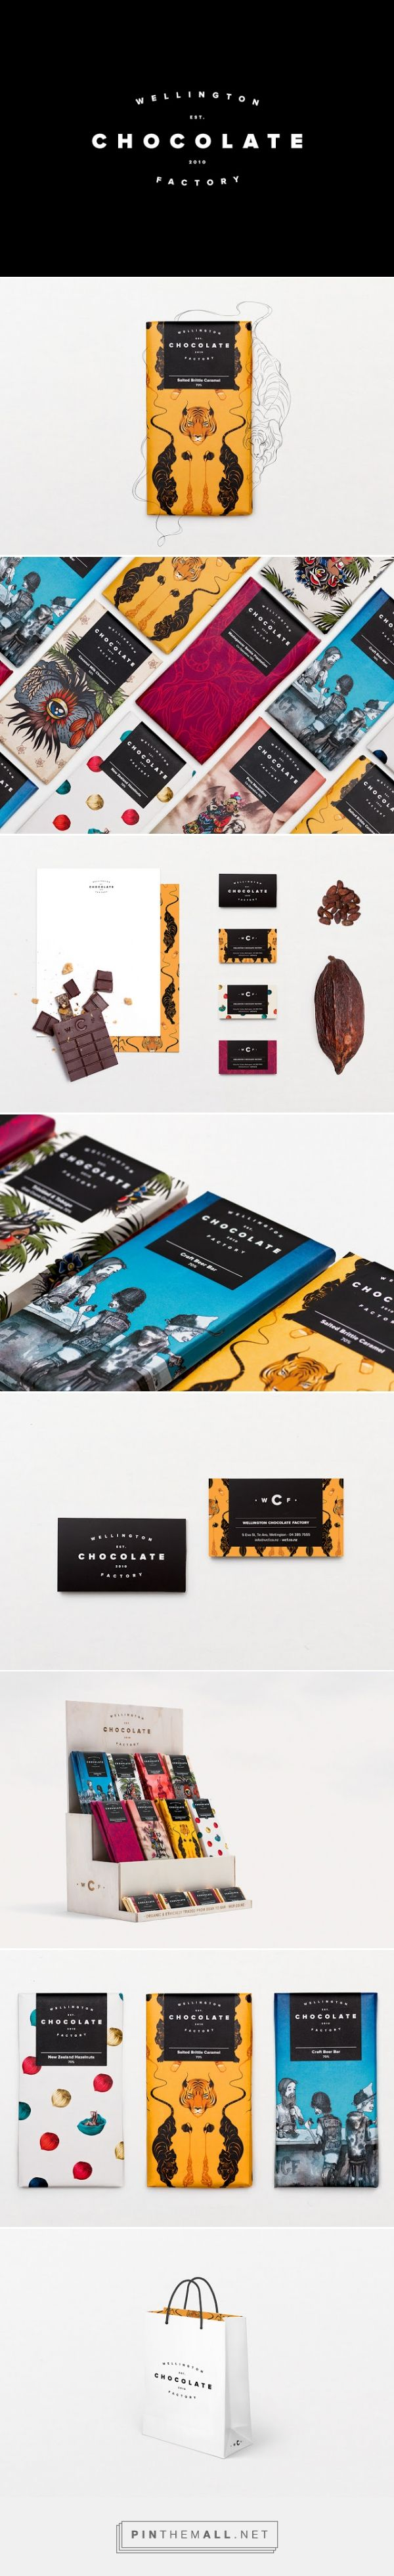 #Wellington #Chocolate Factory #packaging designed by Inject Design - http://www.packagingoftheworld.com/2015/09/wellington-chocolate-factory.html